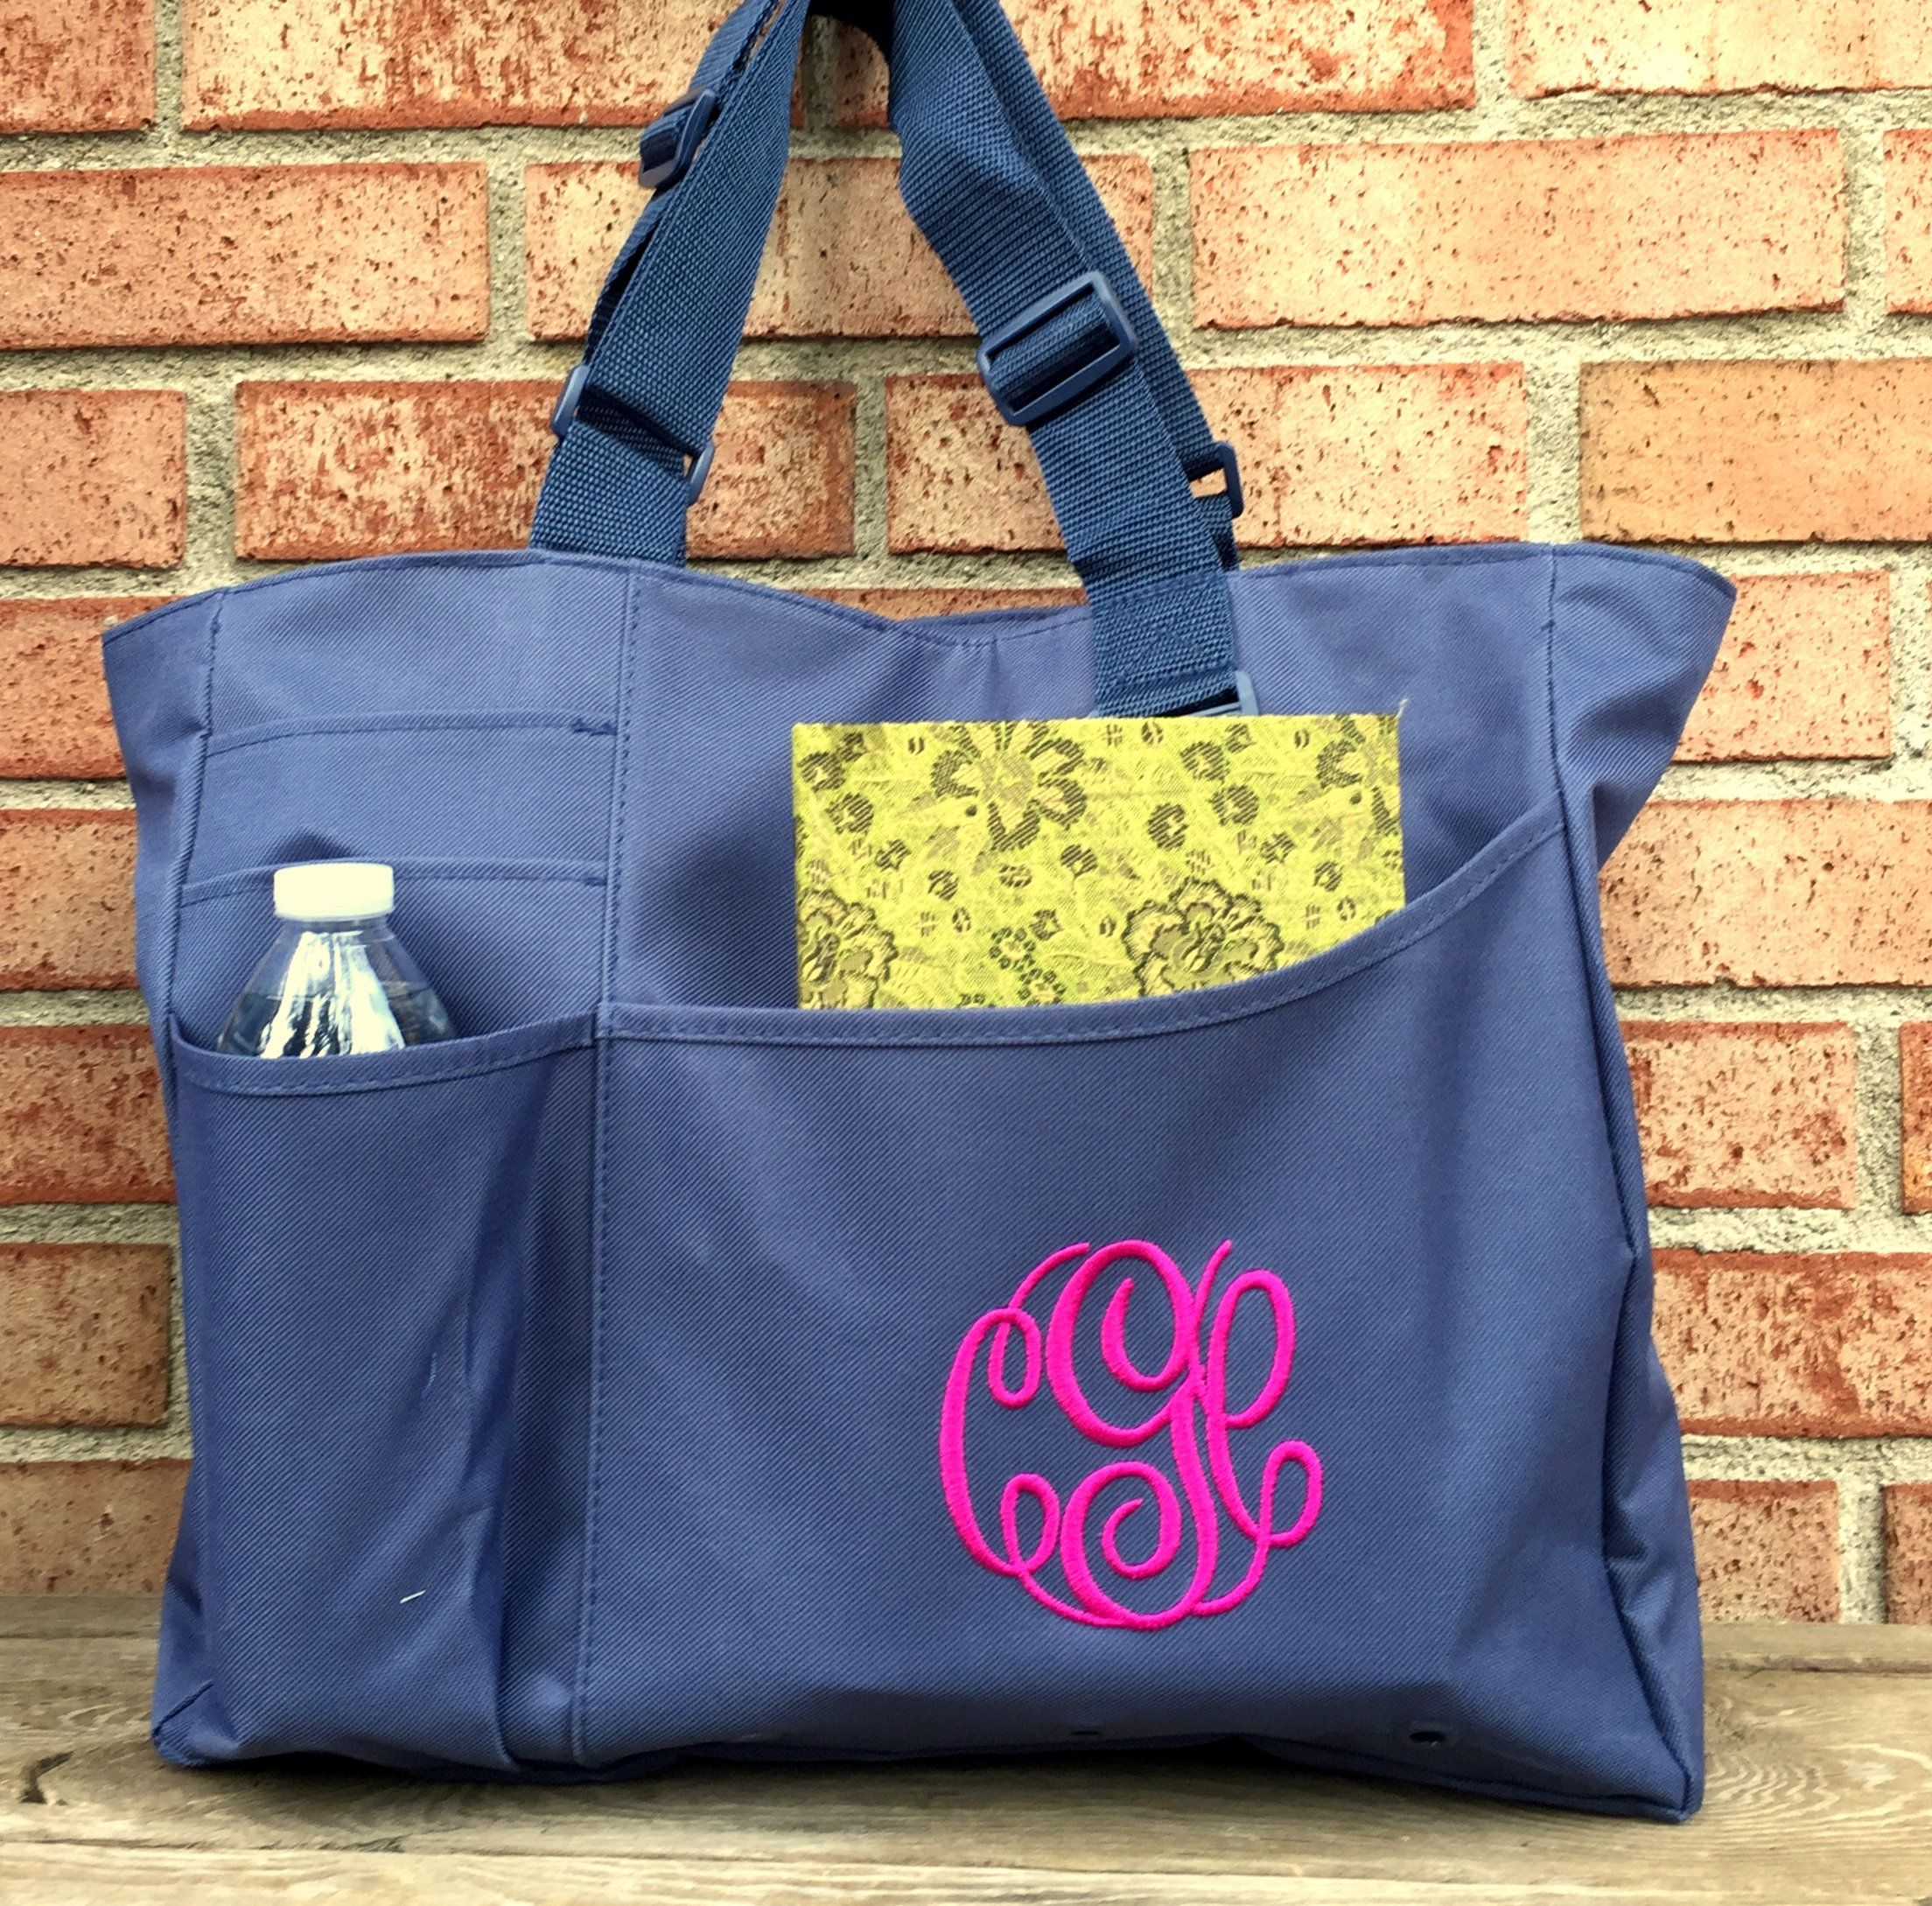 Monogrammed Tote - Solid Color Book Bag - Super Tote - Bridesmaids Bag -  Teacher Bag - Travel Bag - Back to School - End of Year Gift by MJMonograms  on Etsy f4e1b07f2a6dc